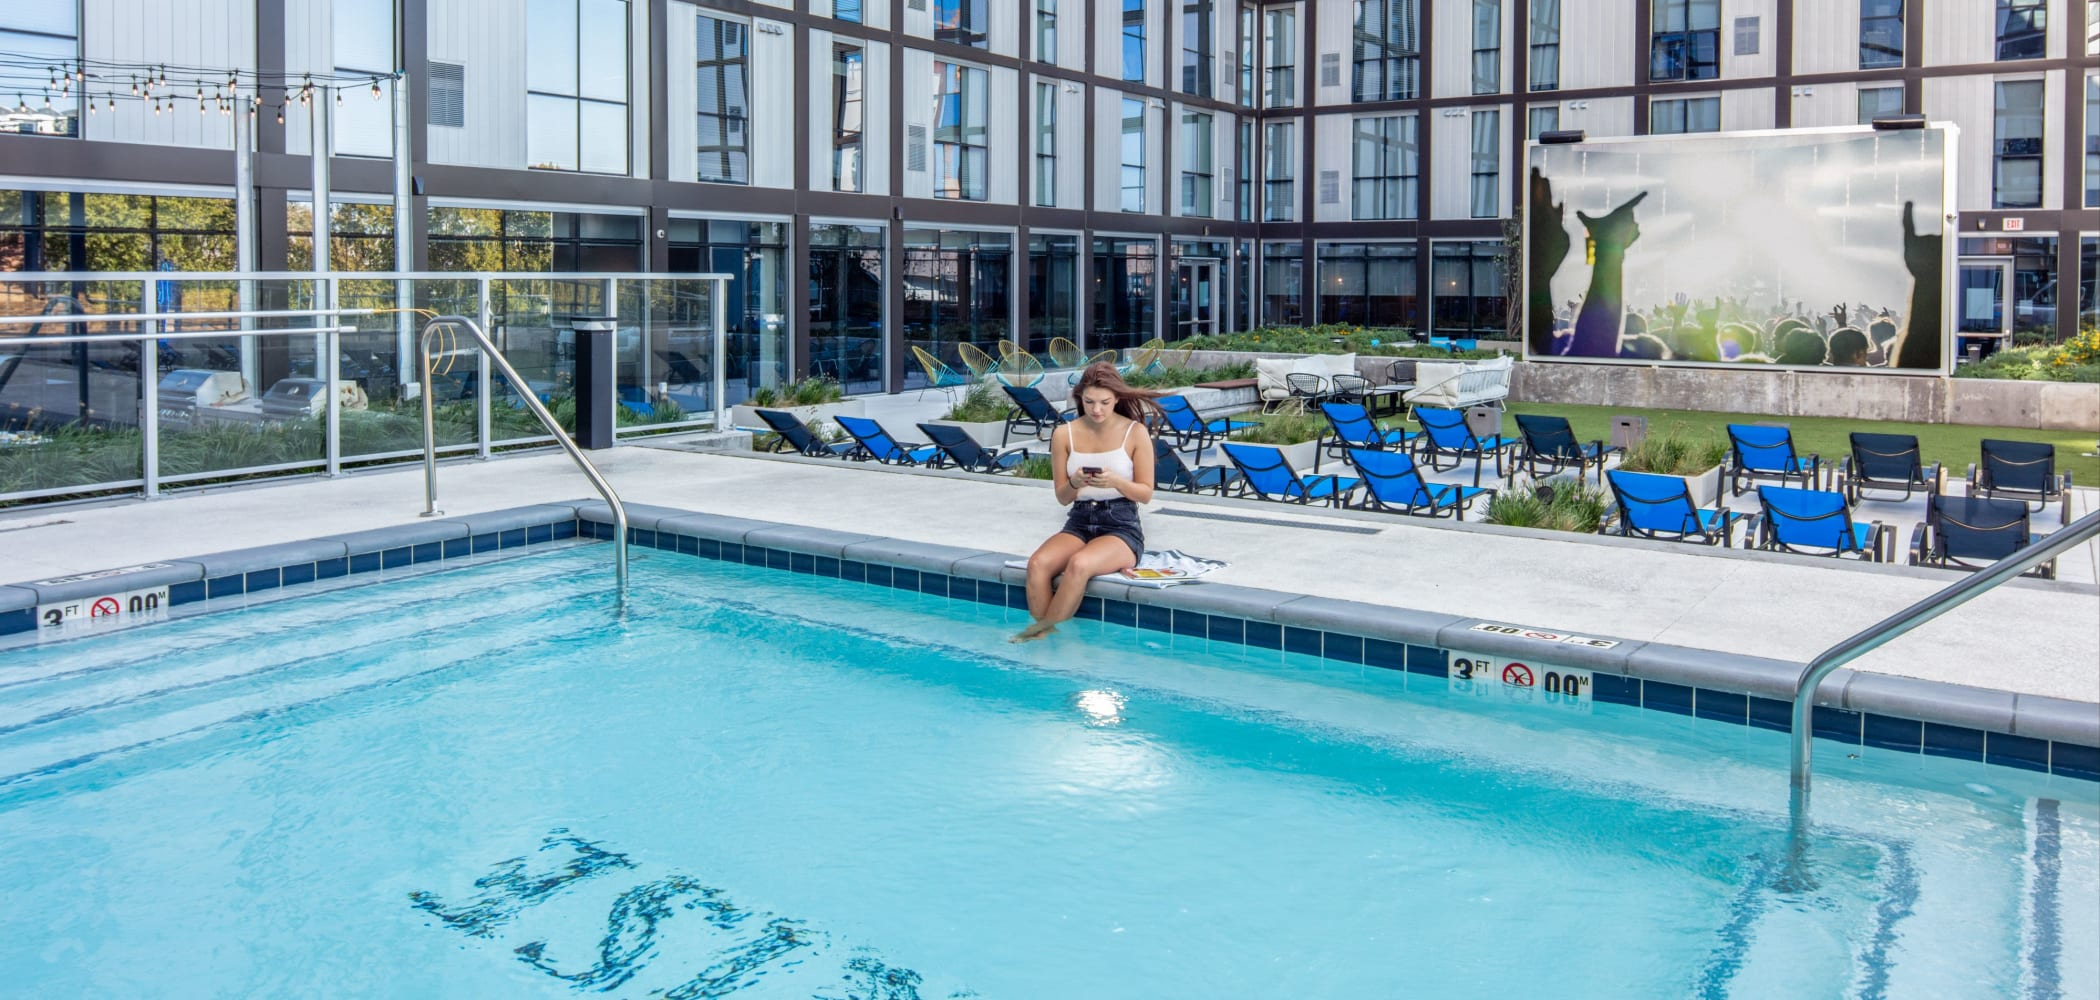 Resort-style swimming pool at RISE at Riverfront Crossings in Iowa City, Iowa